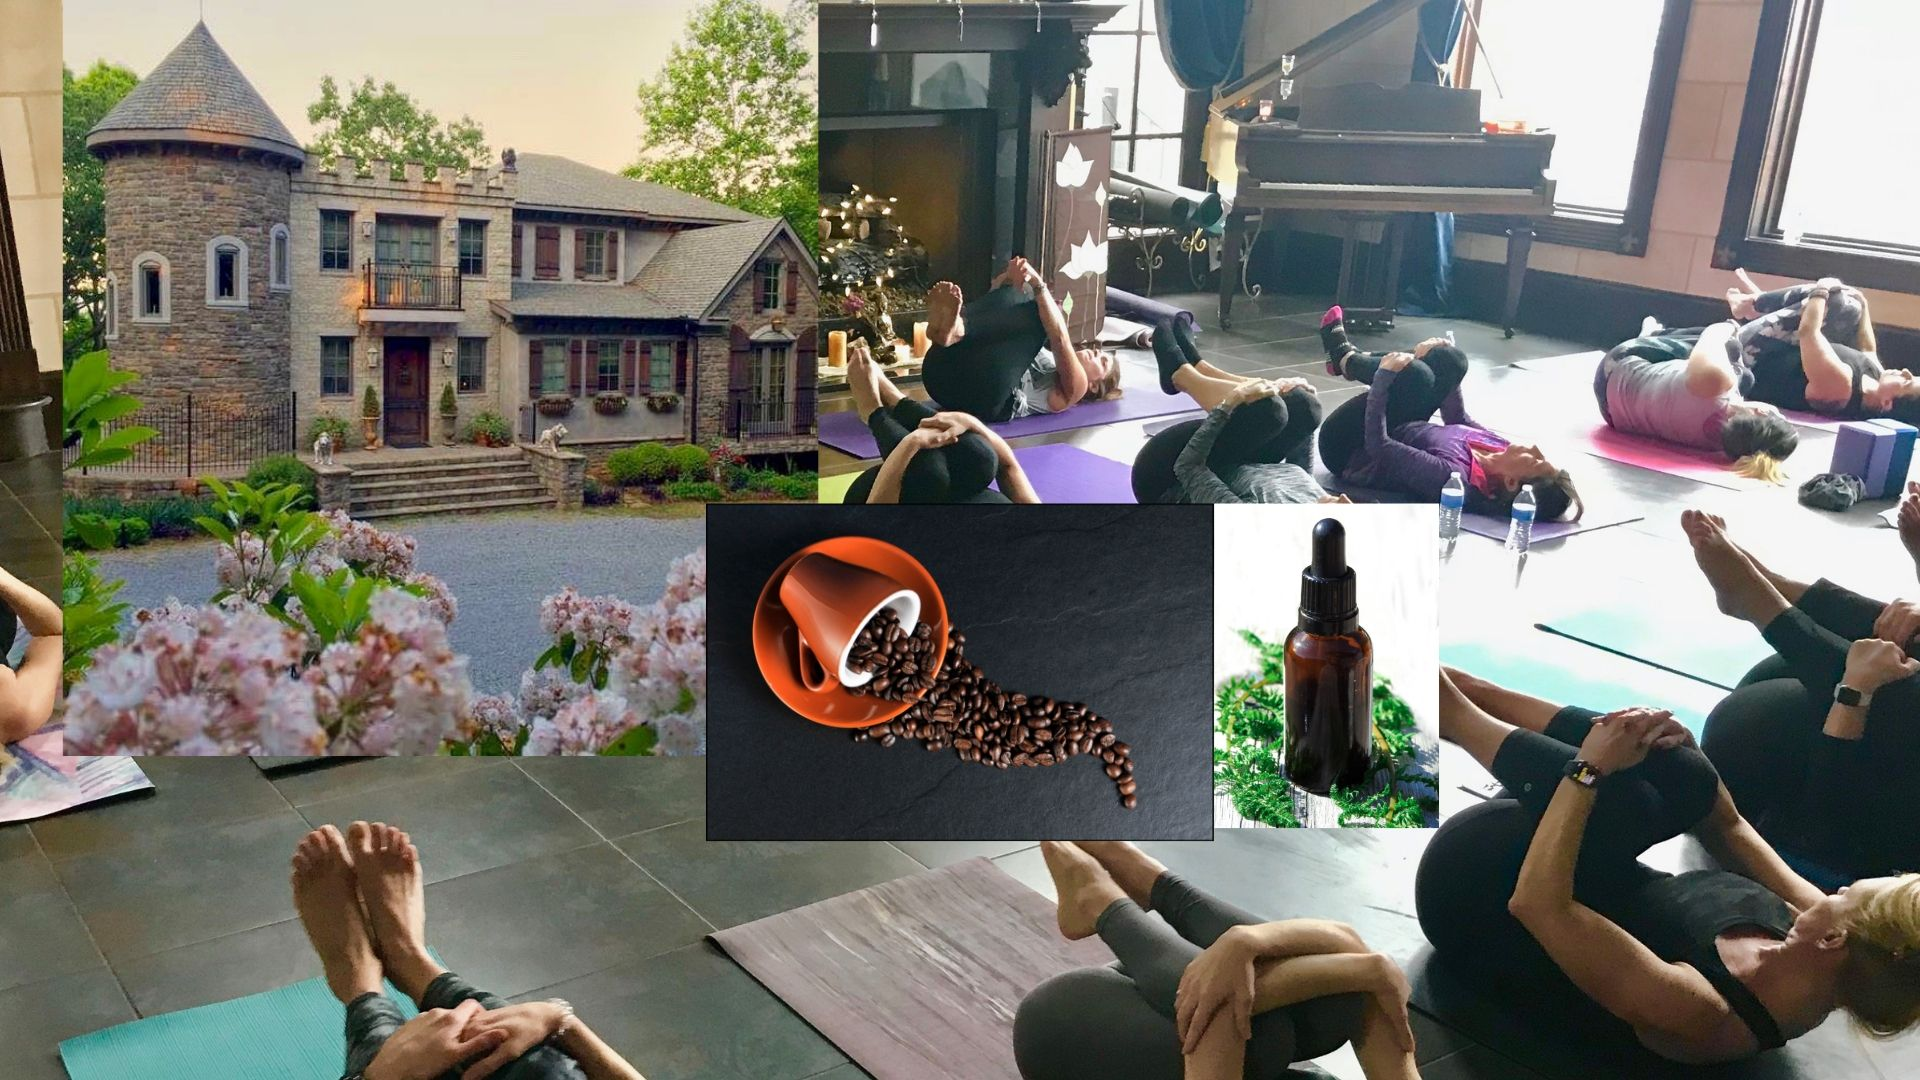 ALPACA FARM/ CBD Yoga, Coffee and Cookies at The Castle